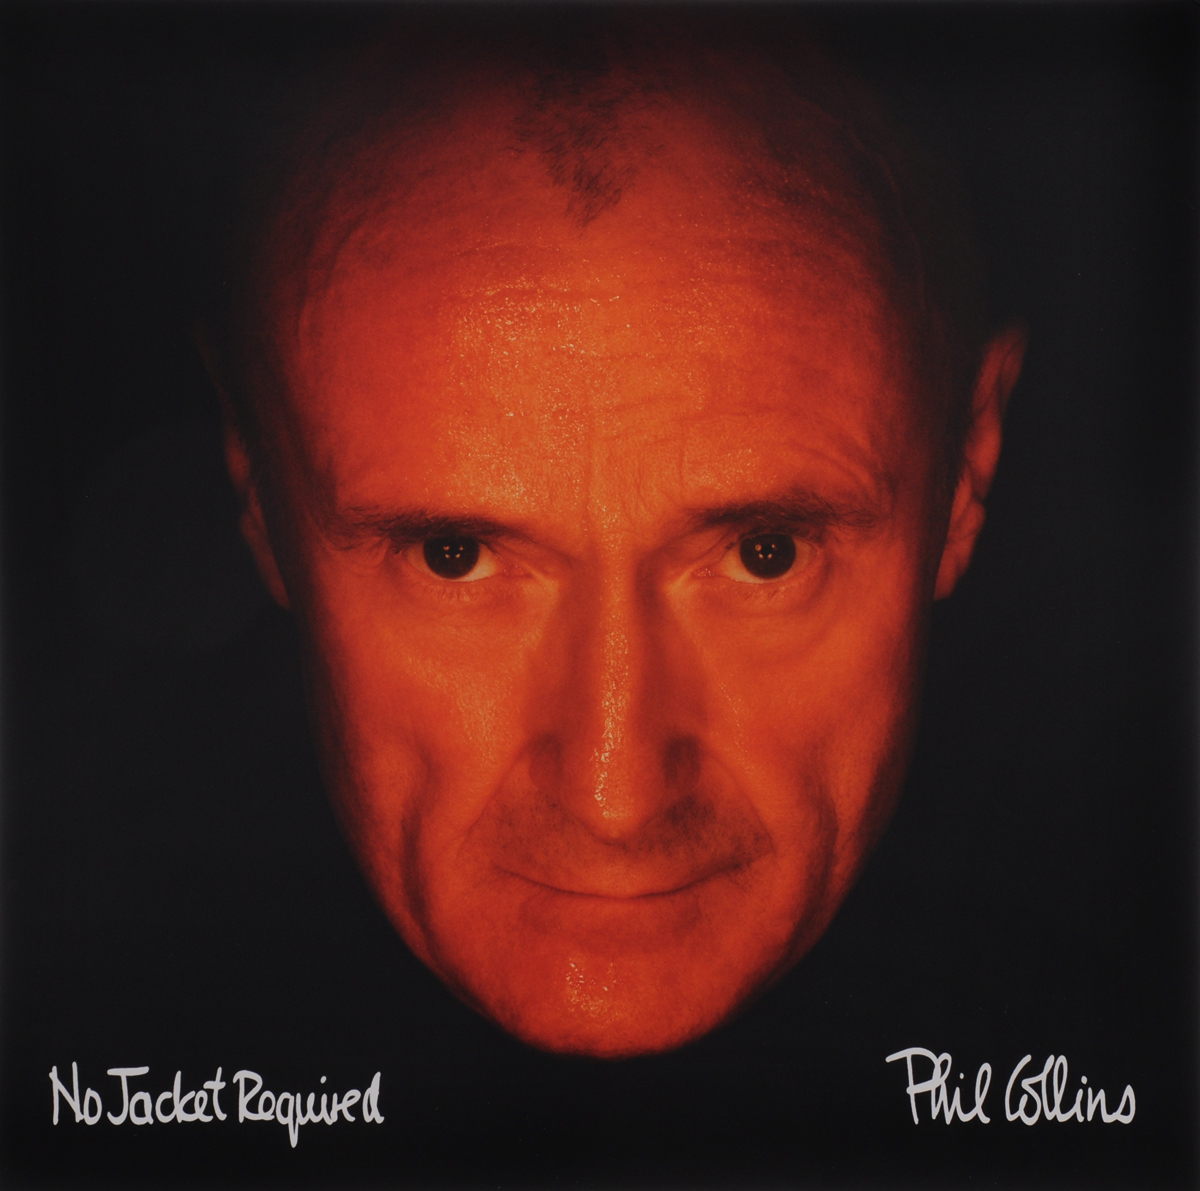 Фил Коллинз Phil Collins. No Jacket Required (LP) виниловая пластинка phil collins take a look at me now collectors edition